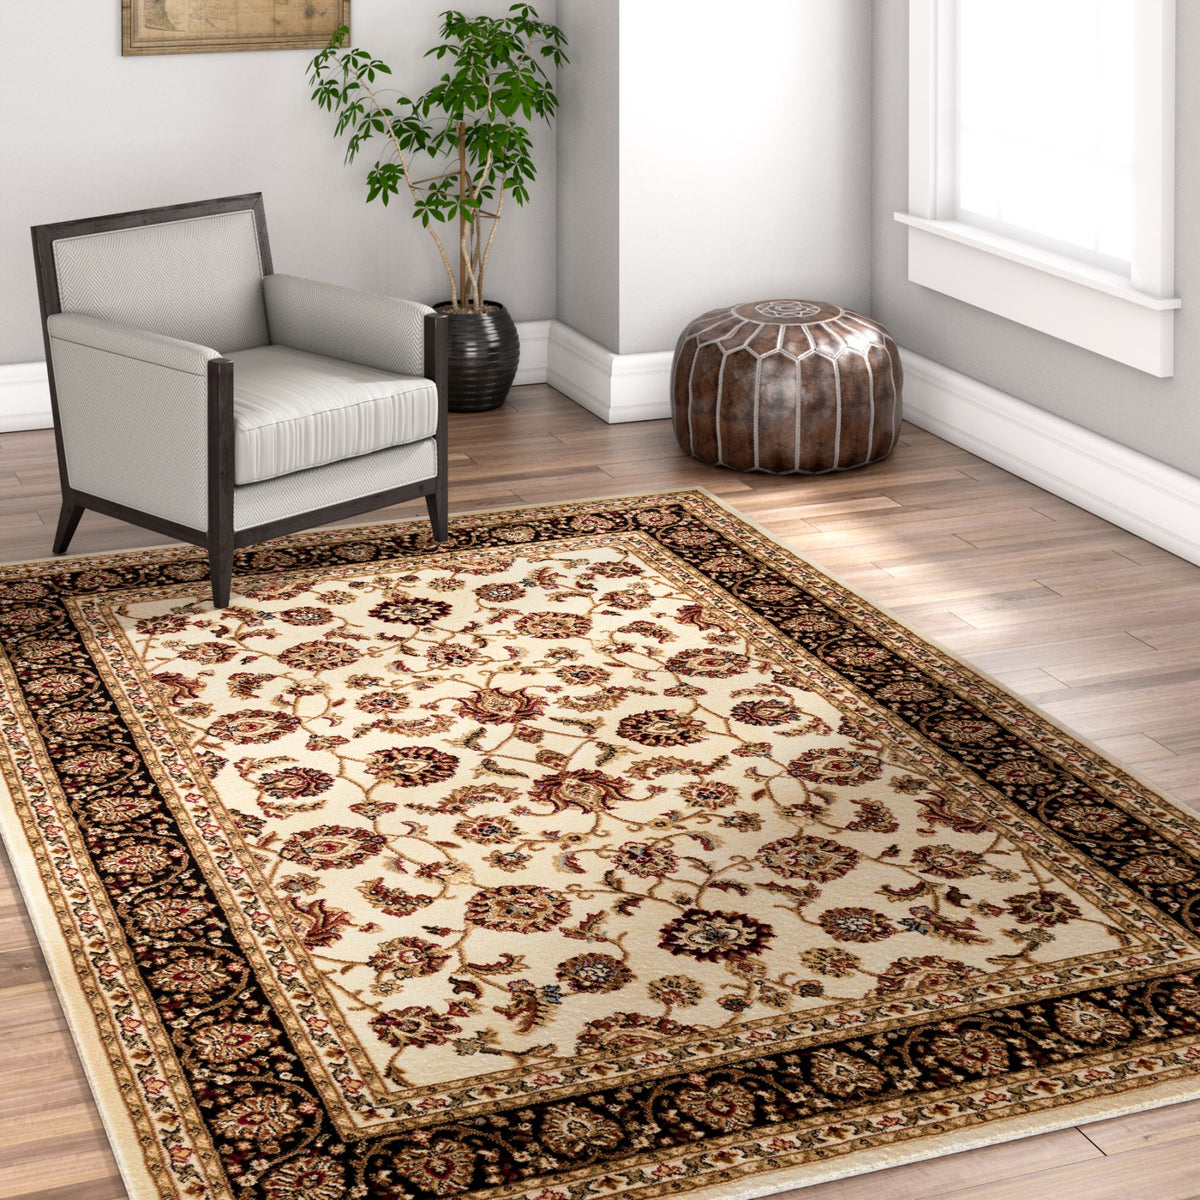 Noble Sarouk Ivory Persian Floral Oriental Formal Traditional Area Rug